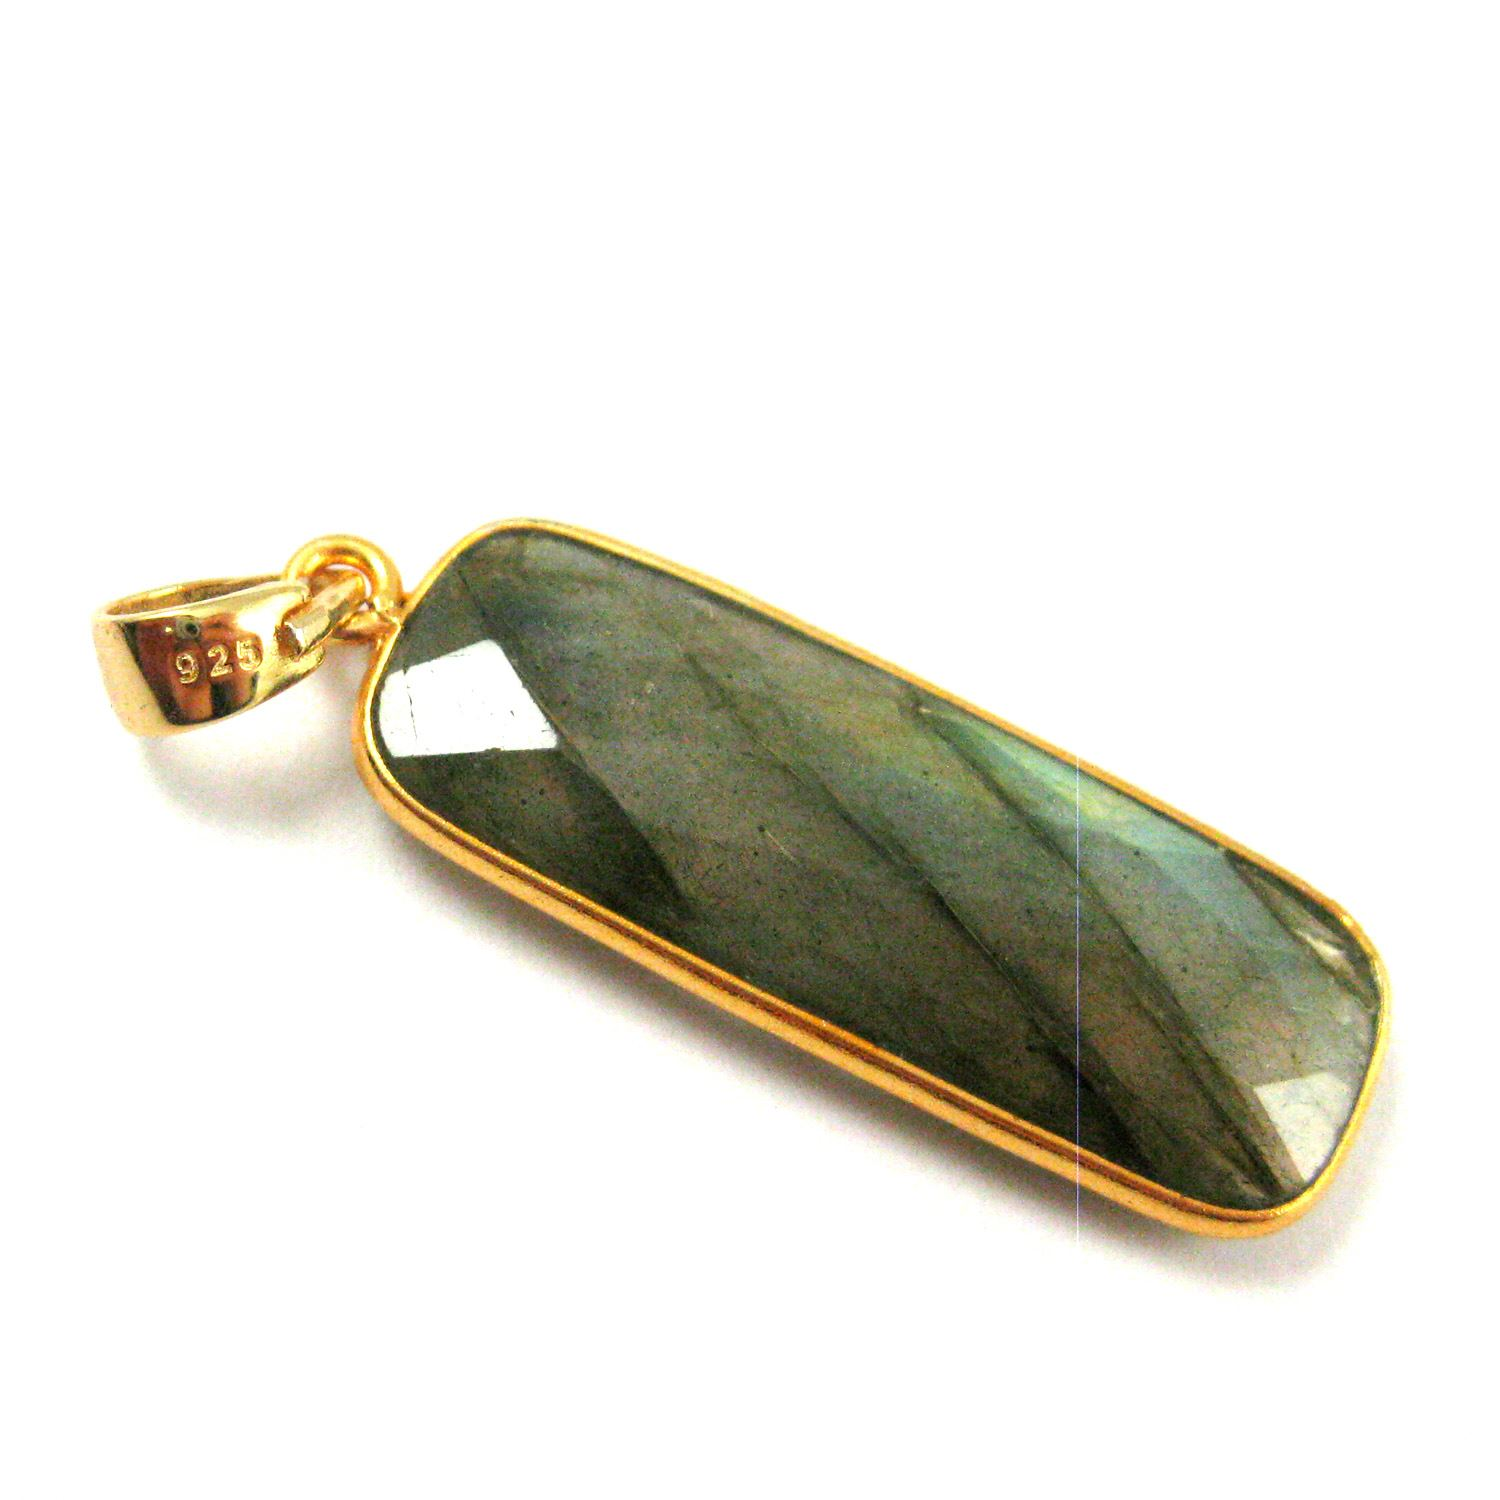 Bezel Gemstone Pendant with Bail - Gold plated Sterling Silver Rectangle Gem Pendant - Ready for Necklace - 40mm - Labradorite